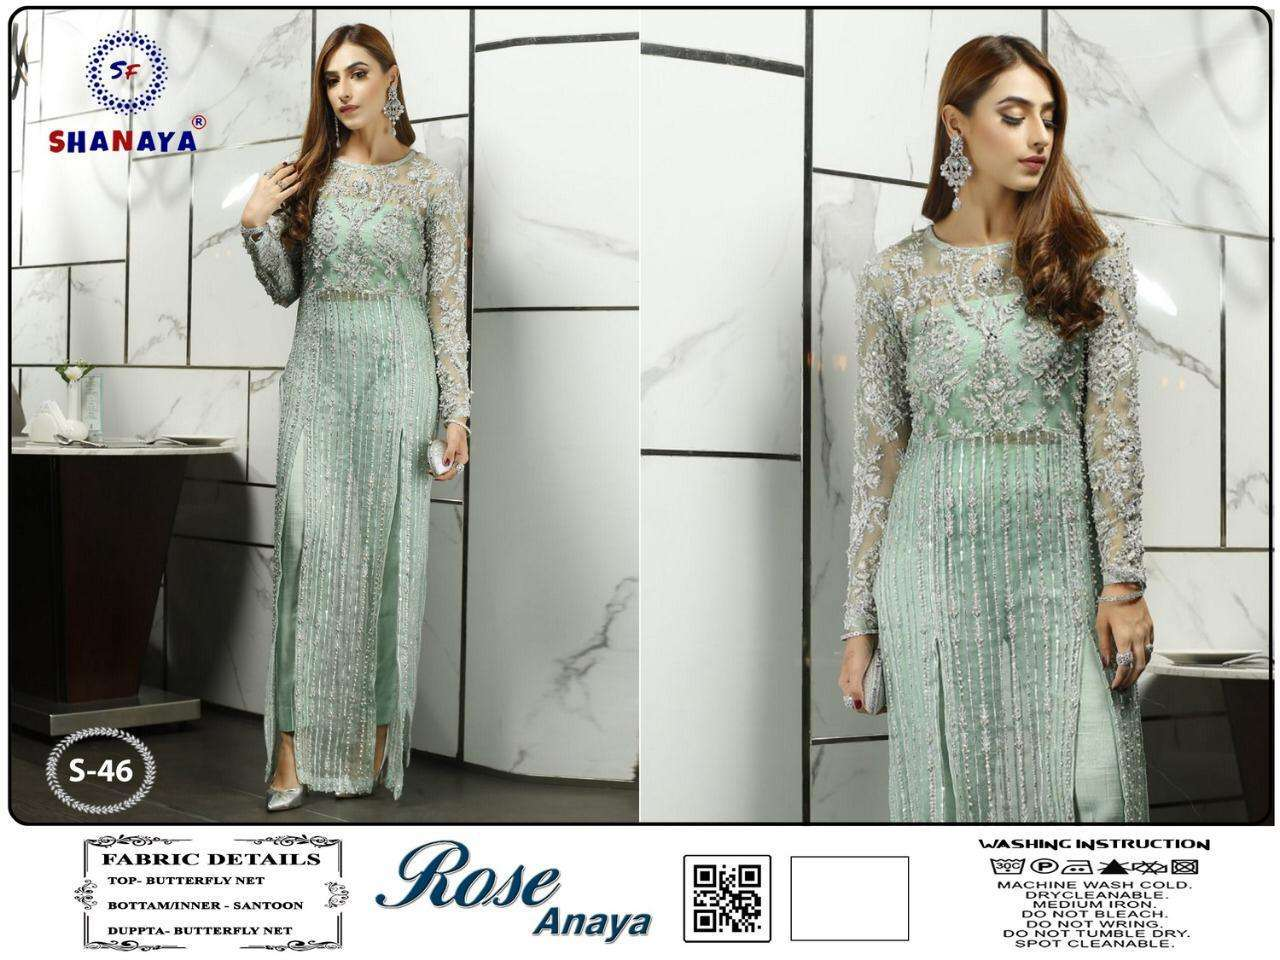 SHANAYA ROSE ANAYA S-46 DESIGNER HEAVY BUTTERFLY NET WITH HEAVY EMBROIDERY AND HANDWORK PARTYWEAR PAKISTANI PATTERN SUITS IN SINGLES